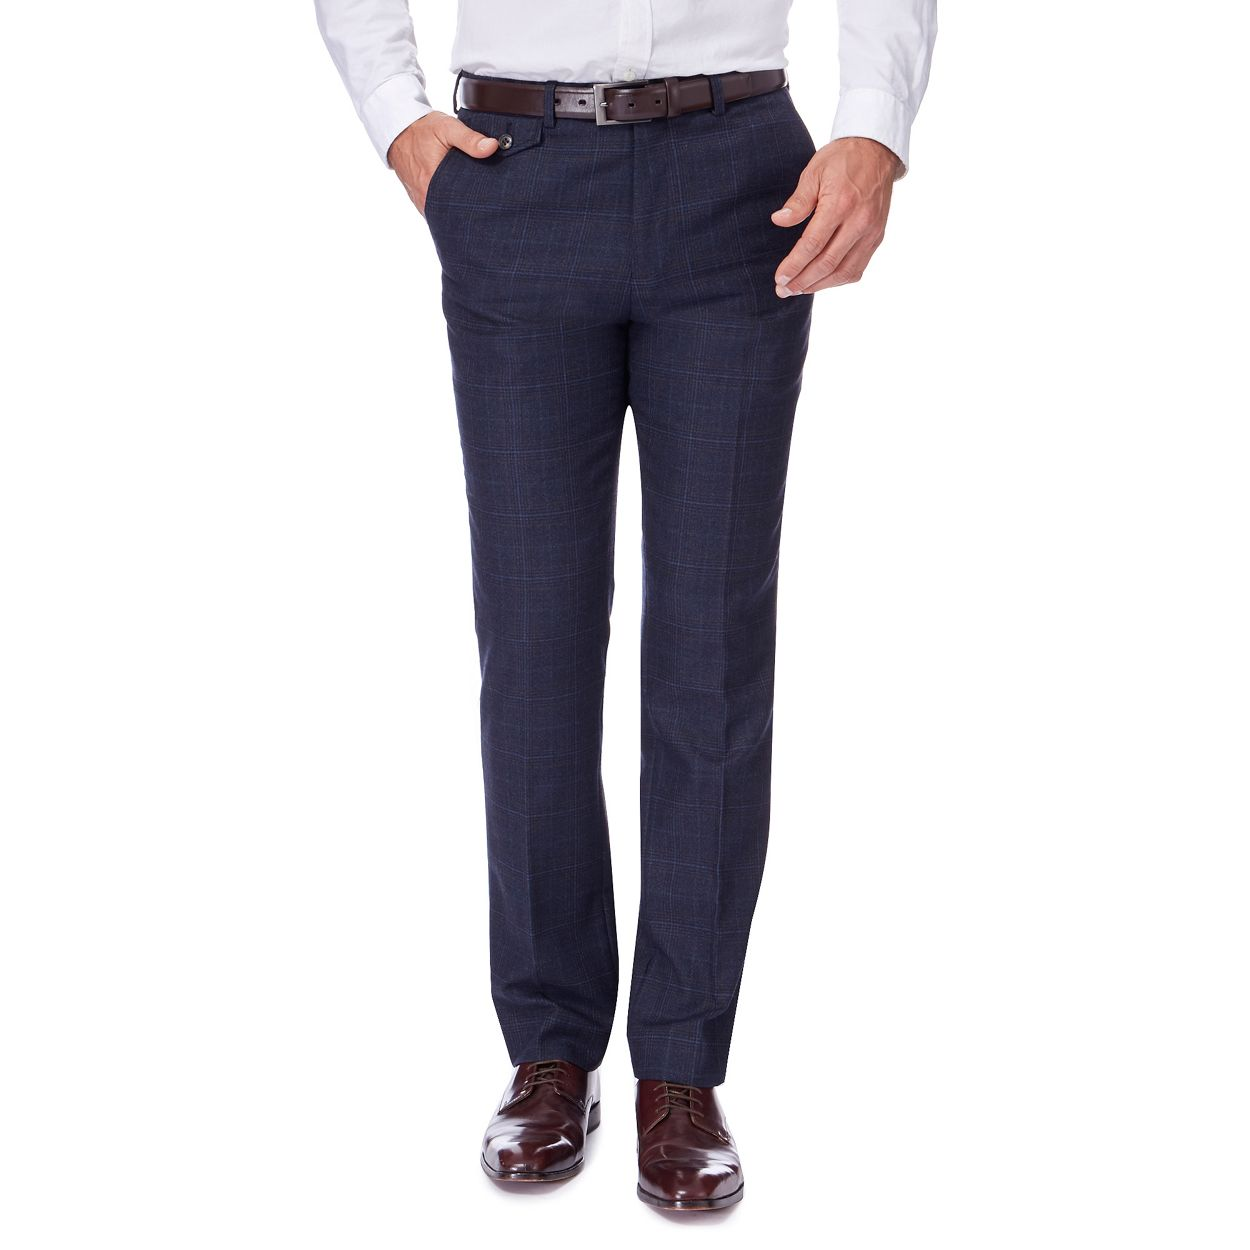 Hammond & Co. by Patrick Grant Navy checked trousers with wool